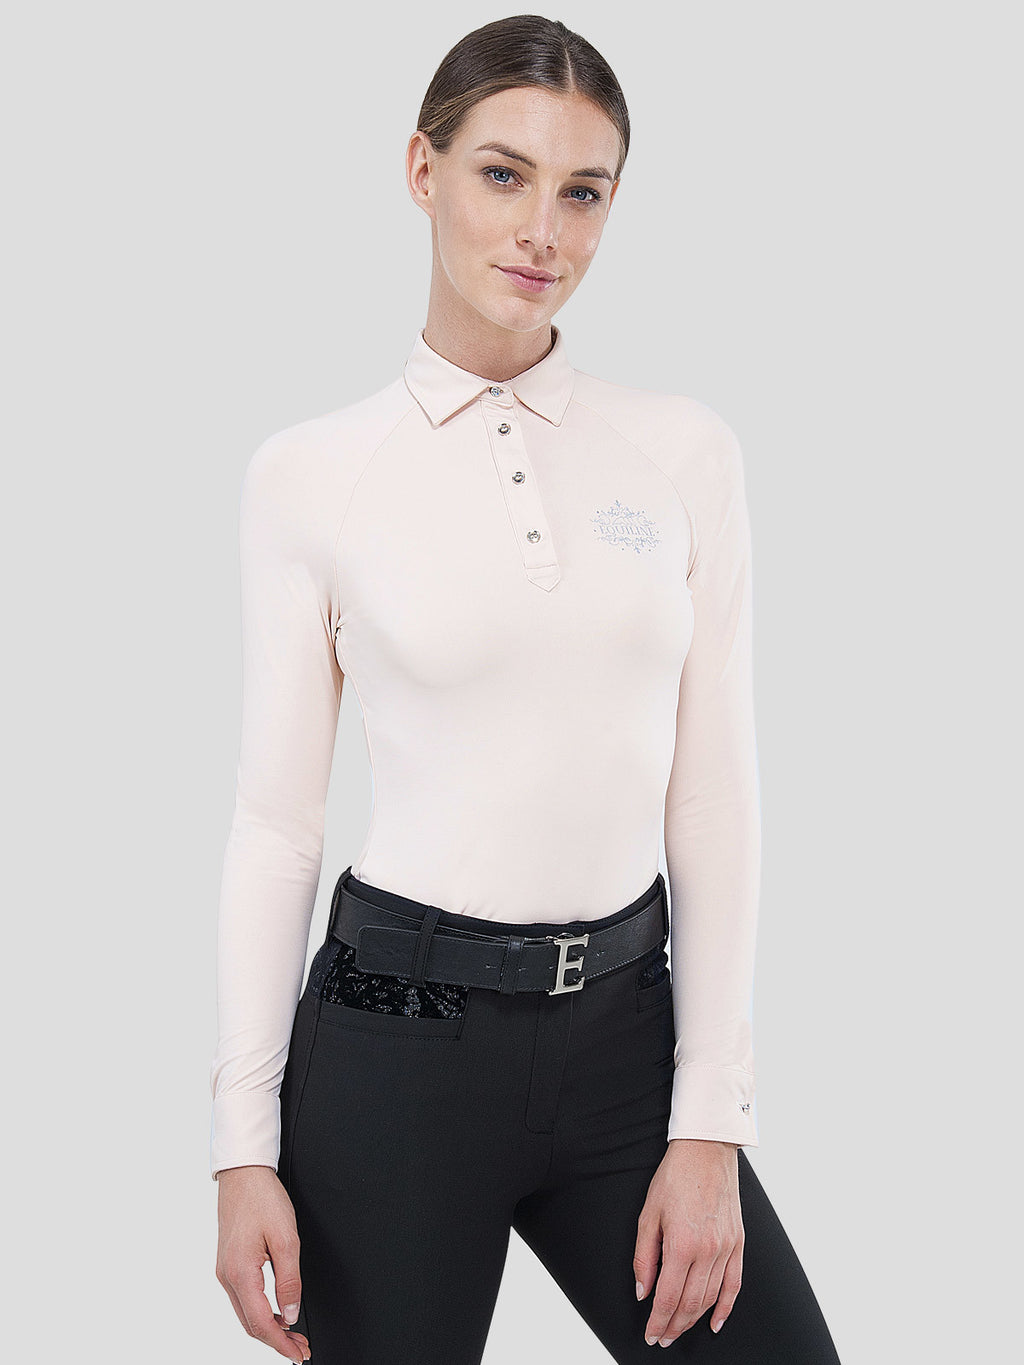 Flamingo - Women's Tech Polo with Long Sleeves